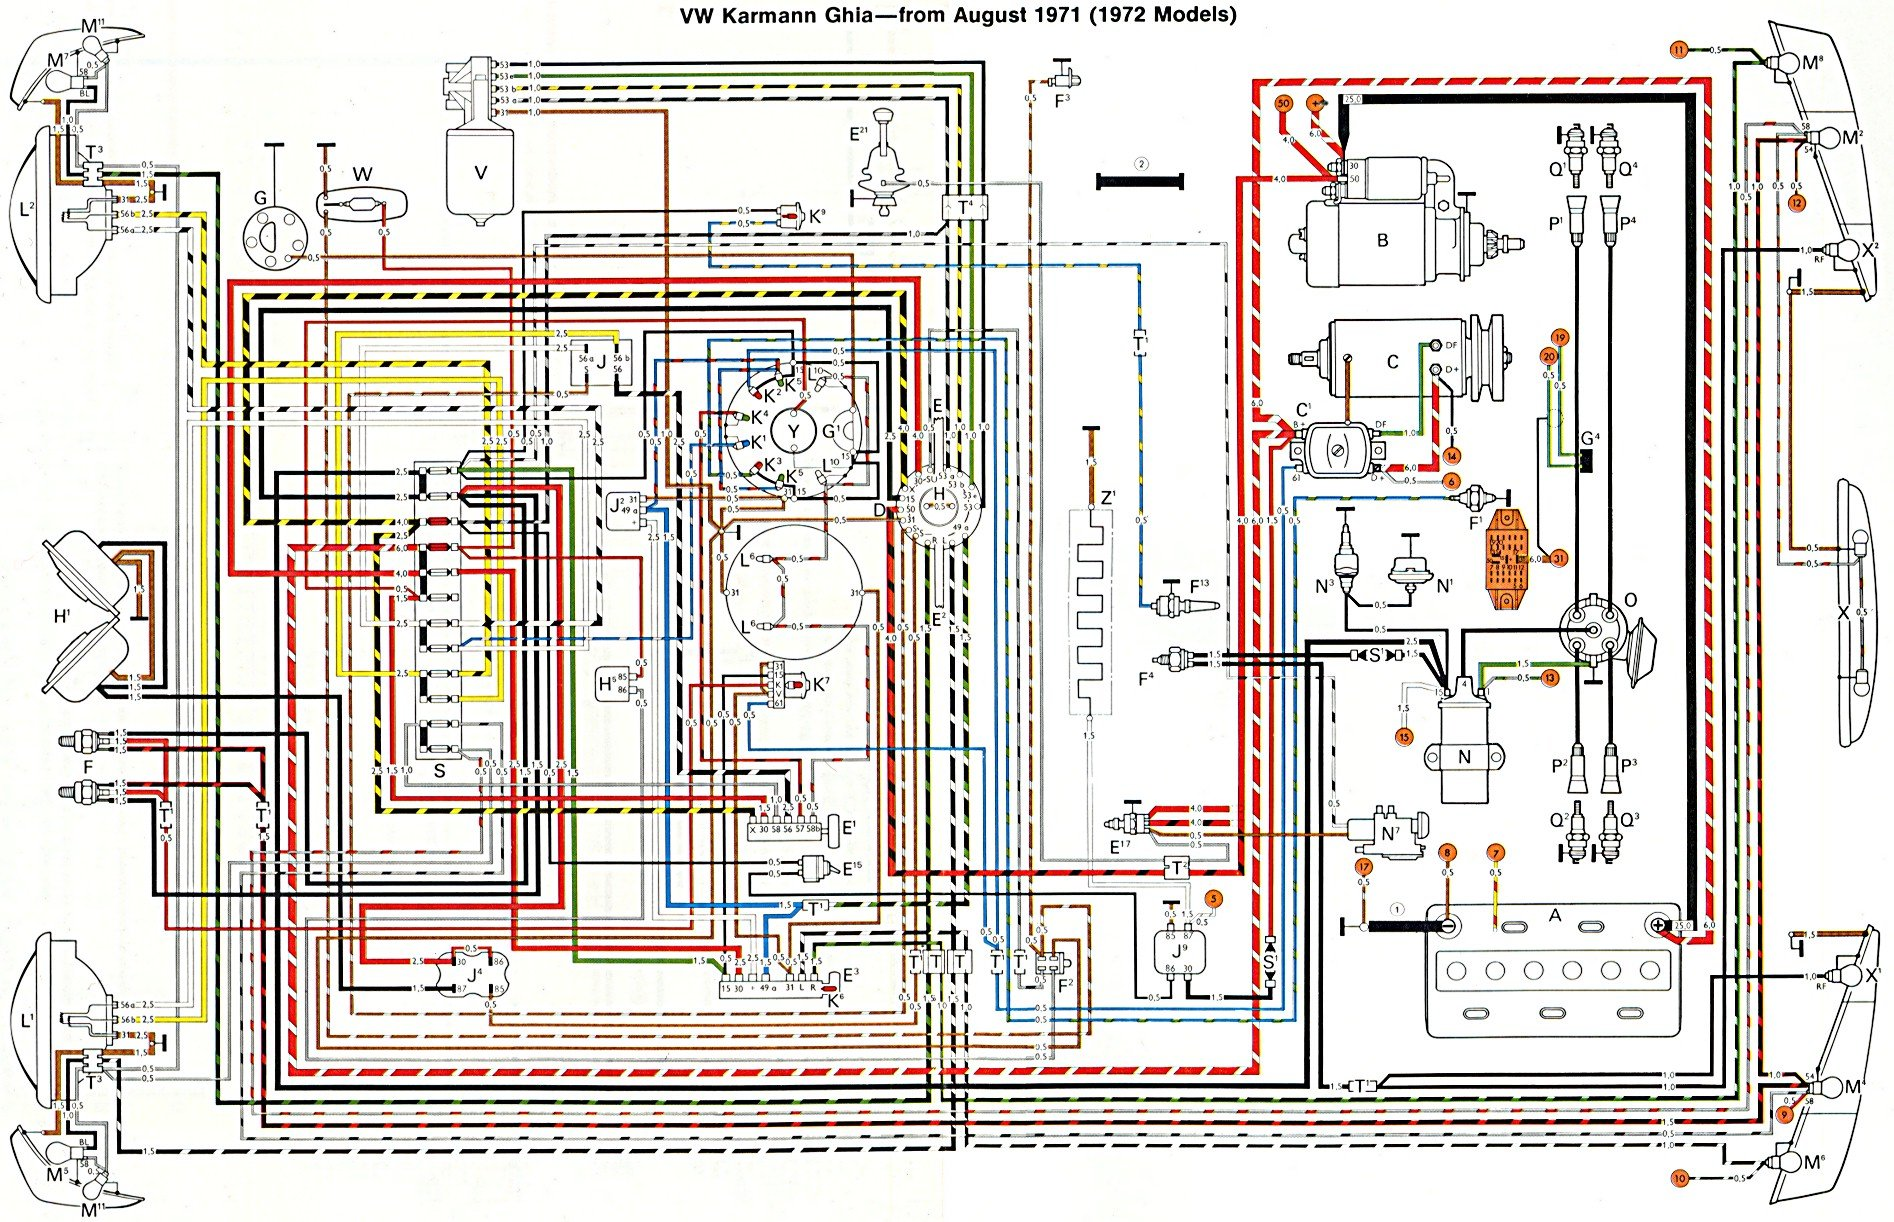 1967 Camaro Fuse Box Diagram All Kind Of Wiring Diagrams 1968 Thesamba Com Karmann Ghia 67